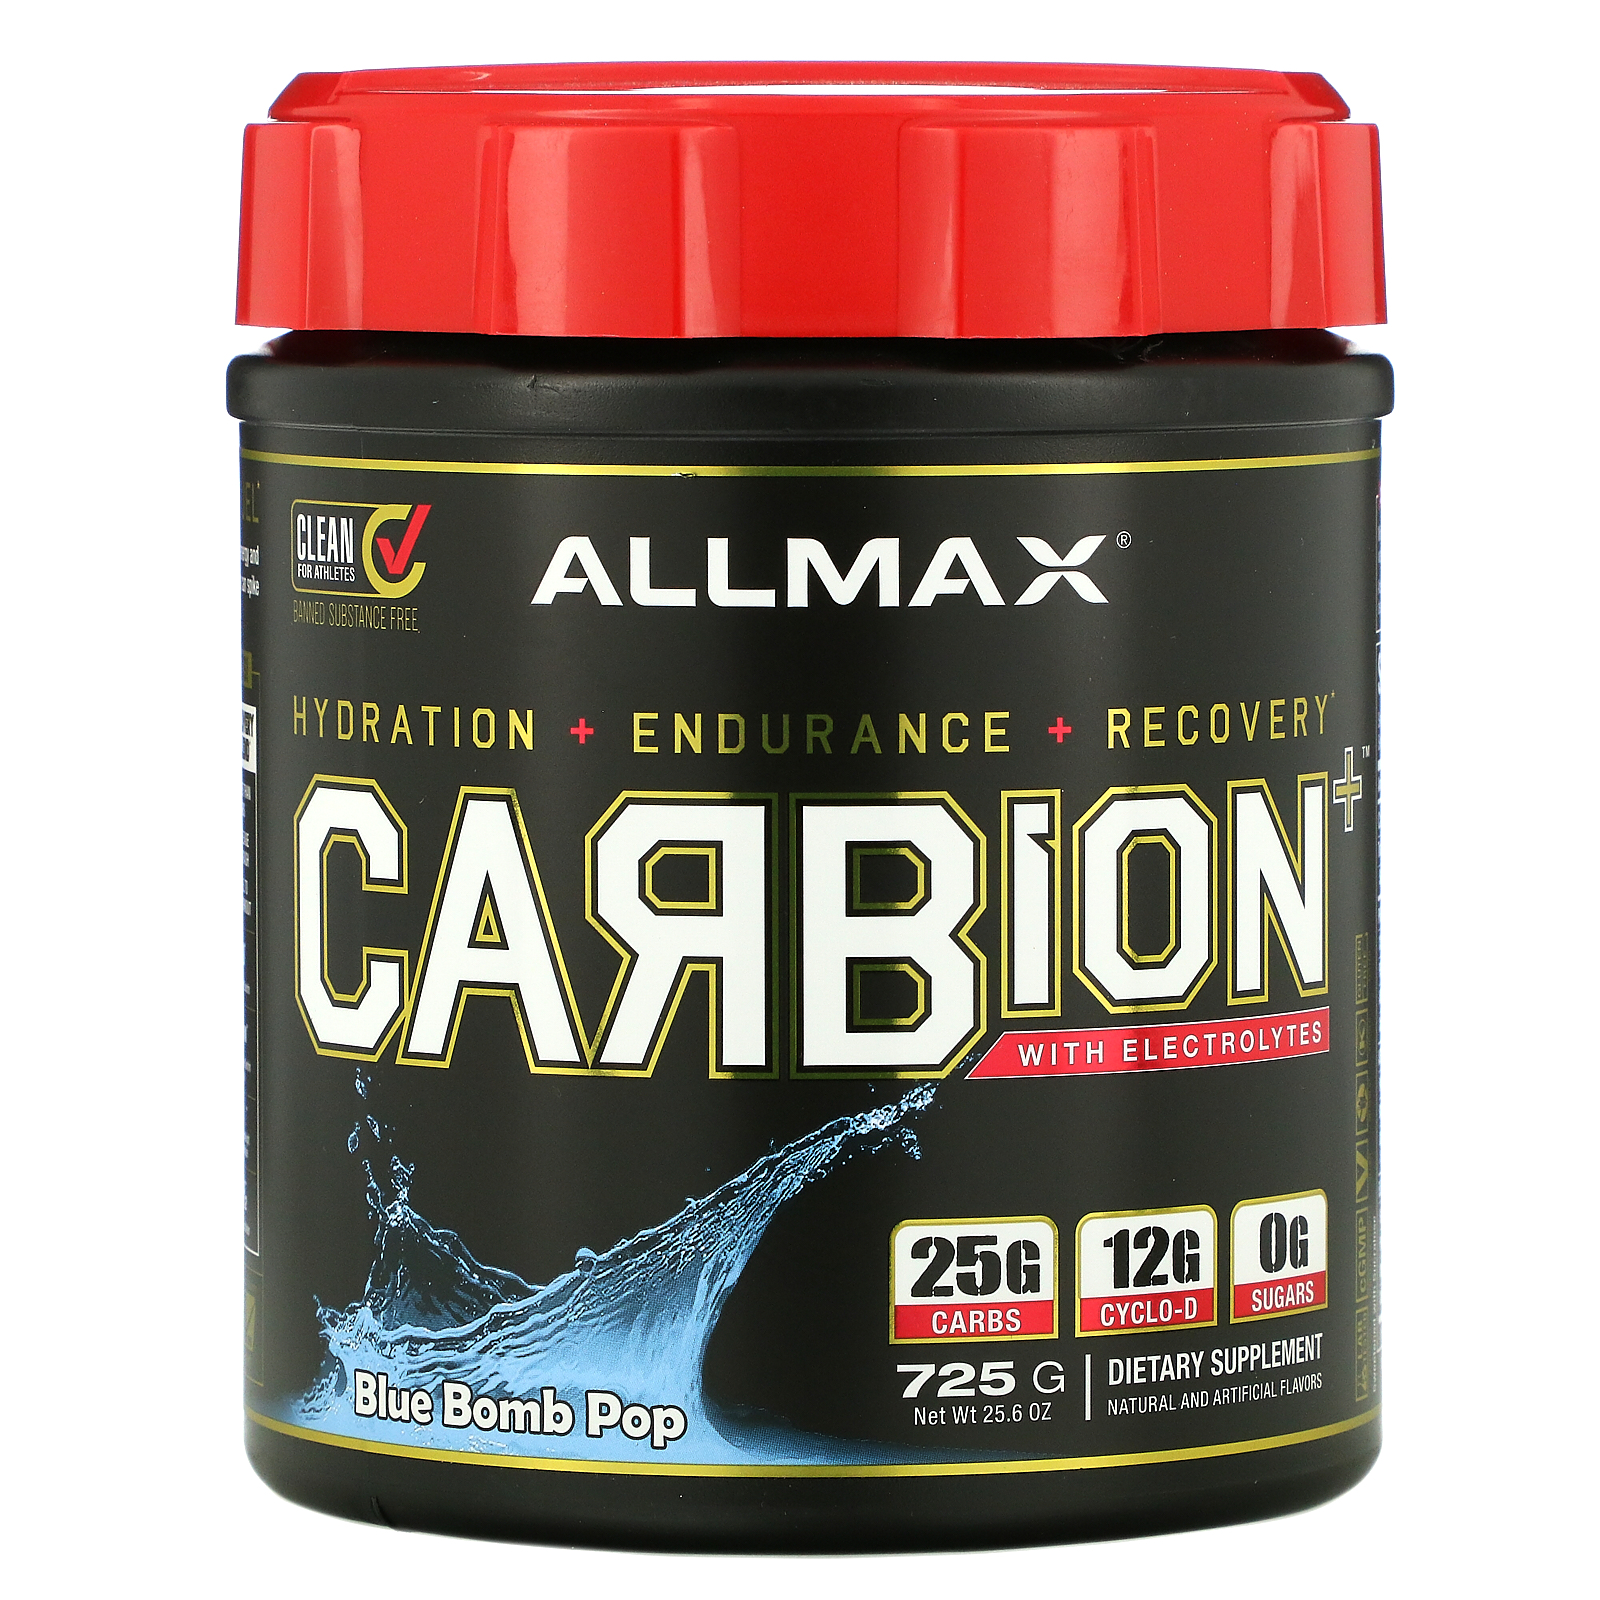 ALLMAX Nutrition, CARBion+ with Electrolytes, Blue Bomb Pop, 1.91 lbs (870 g)